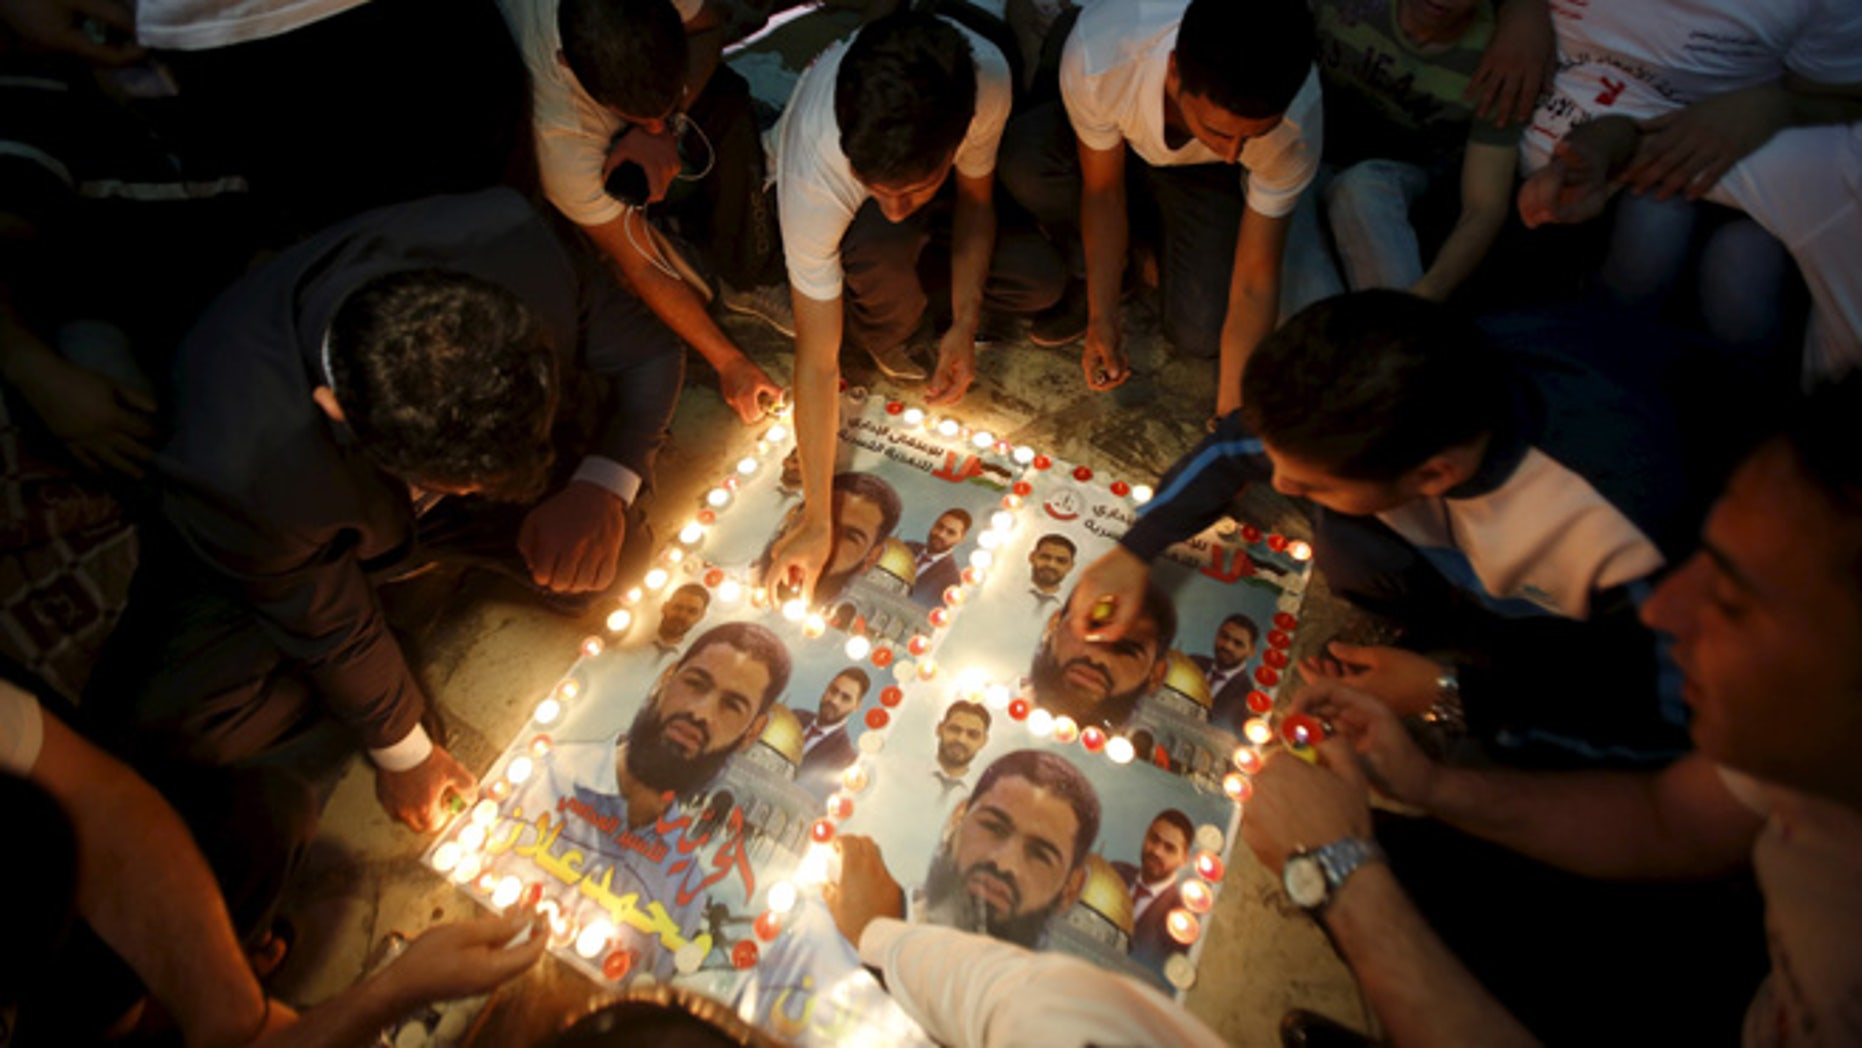 Aug. 19: Palestinians light candles on posters depicting Palestinian detainee Mohammed Allan during a protest in support of Allan in the West Bank city of Hebron.